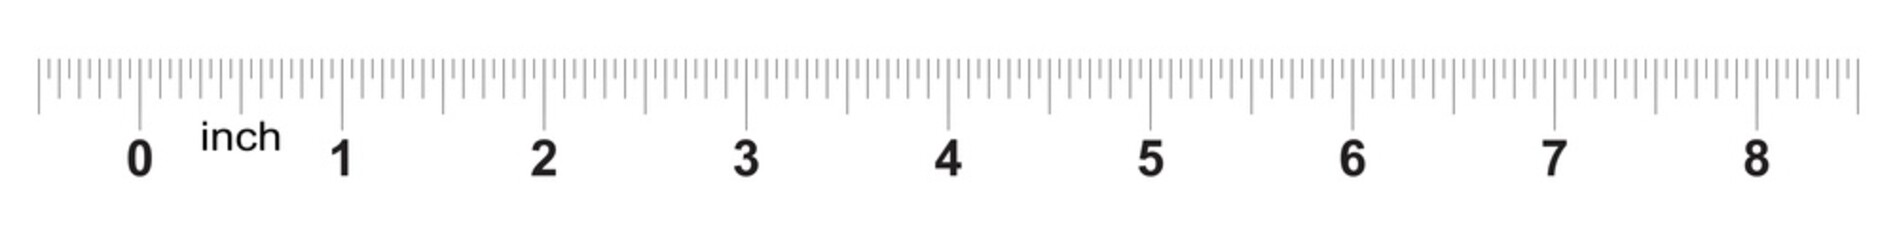 Ruler 8 inches. Metric inch size indicator. Decimal system grid. Measuring tool.